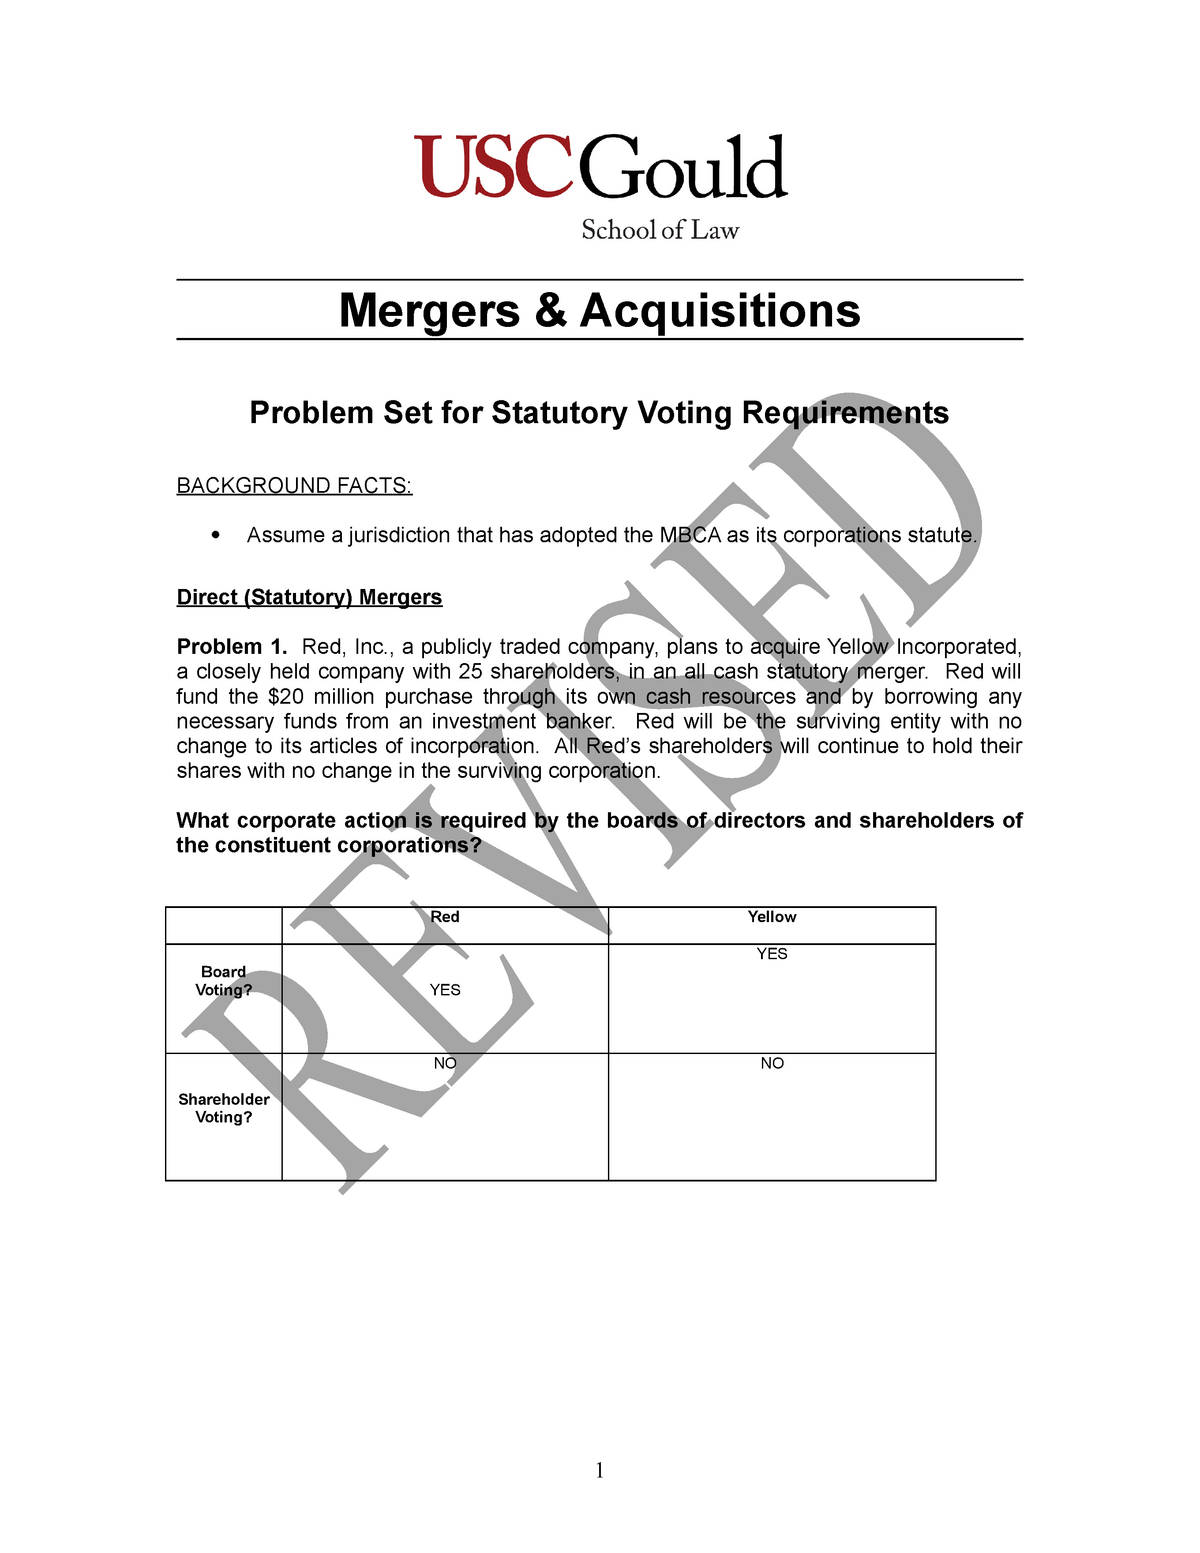 M&A Week 2 Problems (Voting Requirements) - LAW658 - USC